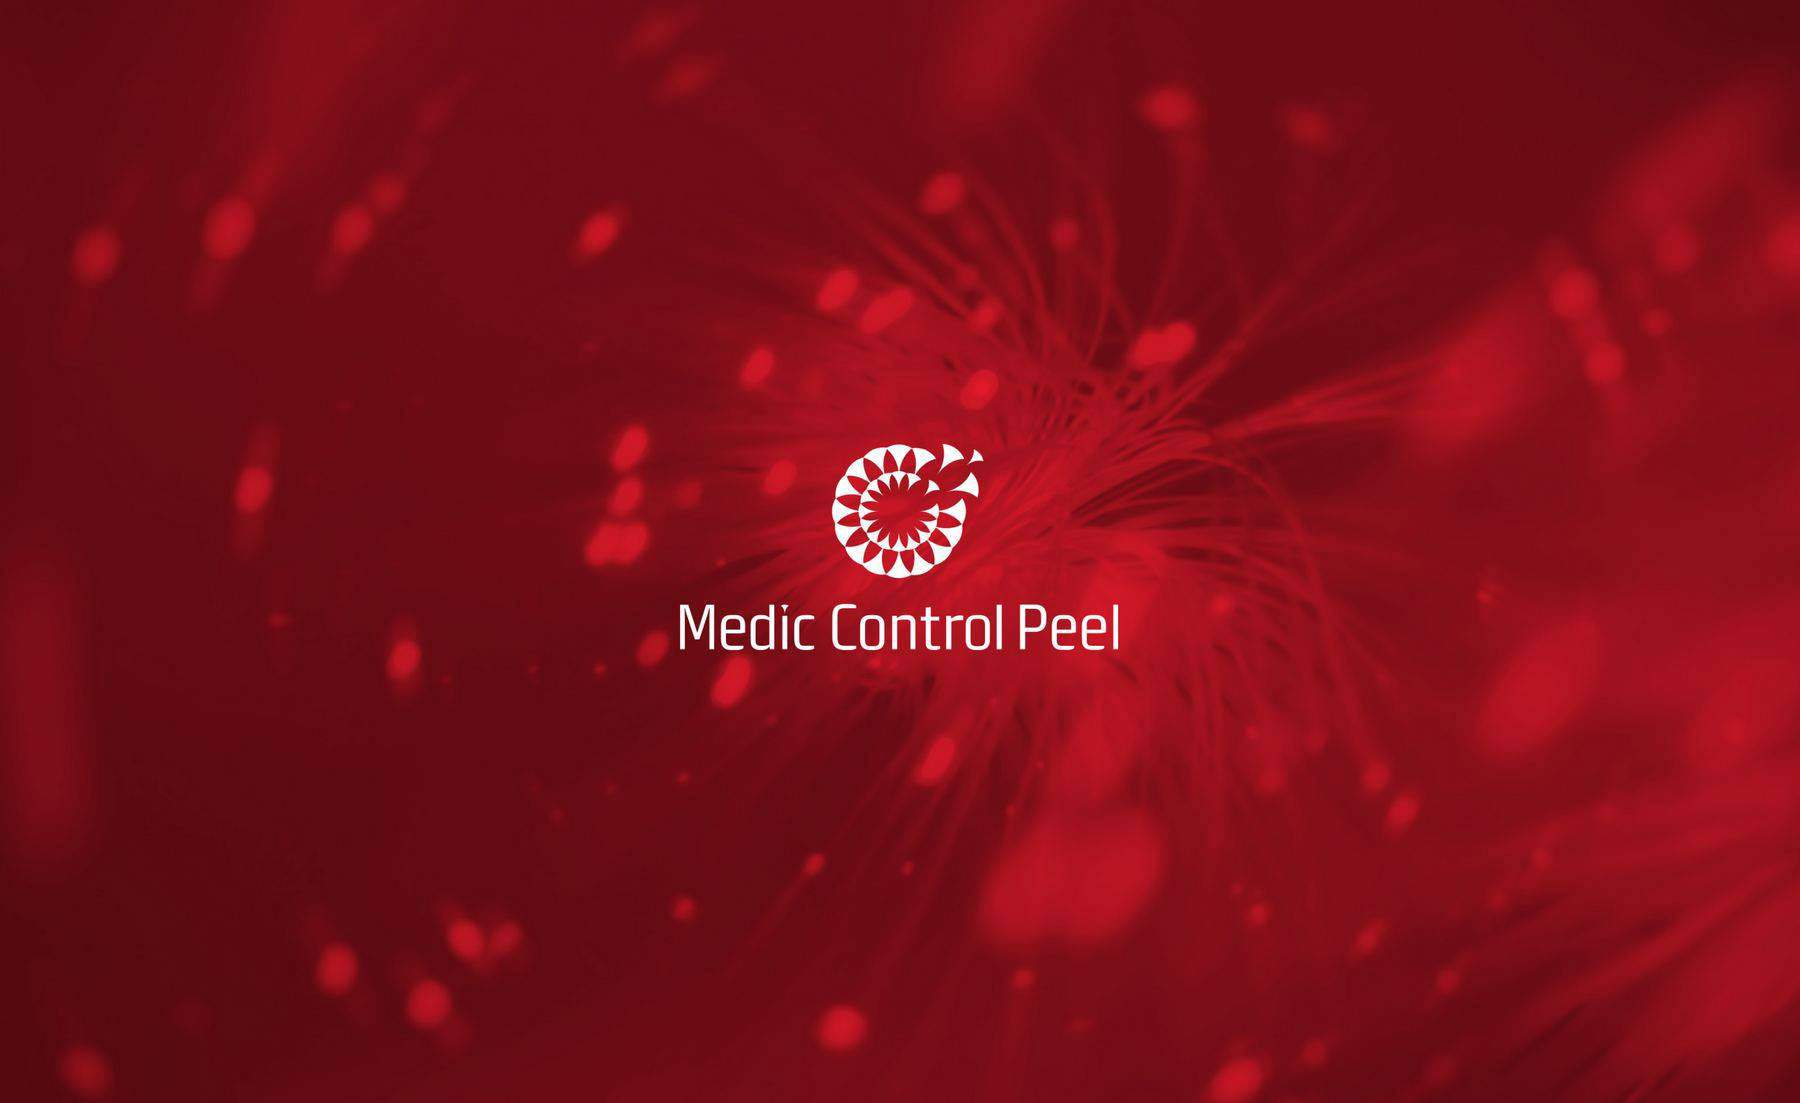 Corporate identity for Medic Control Peel portfolio